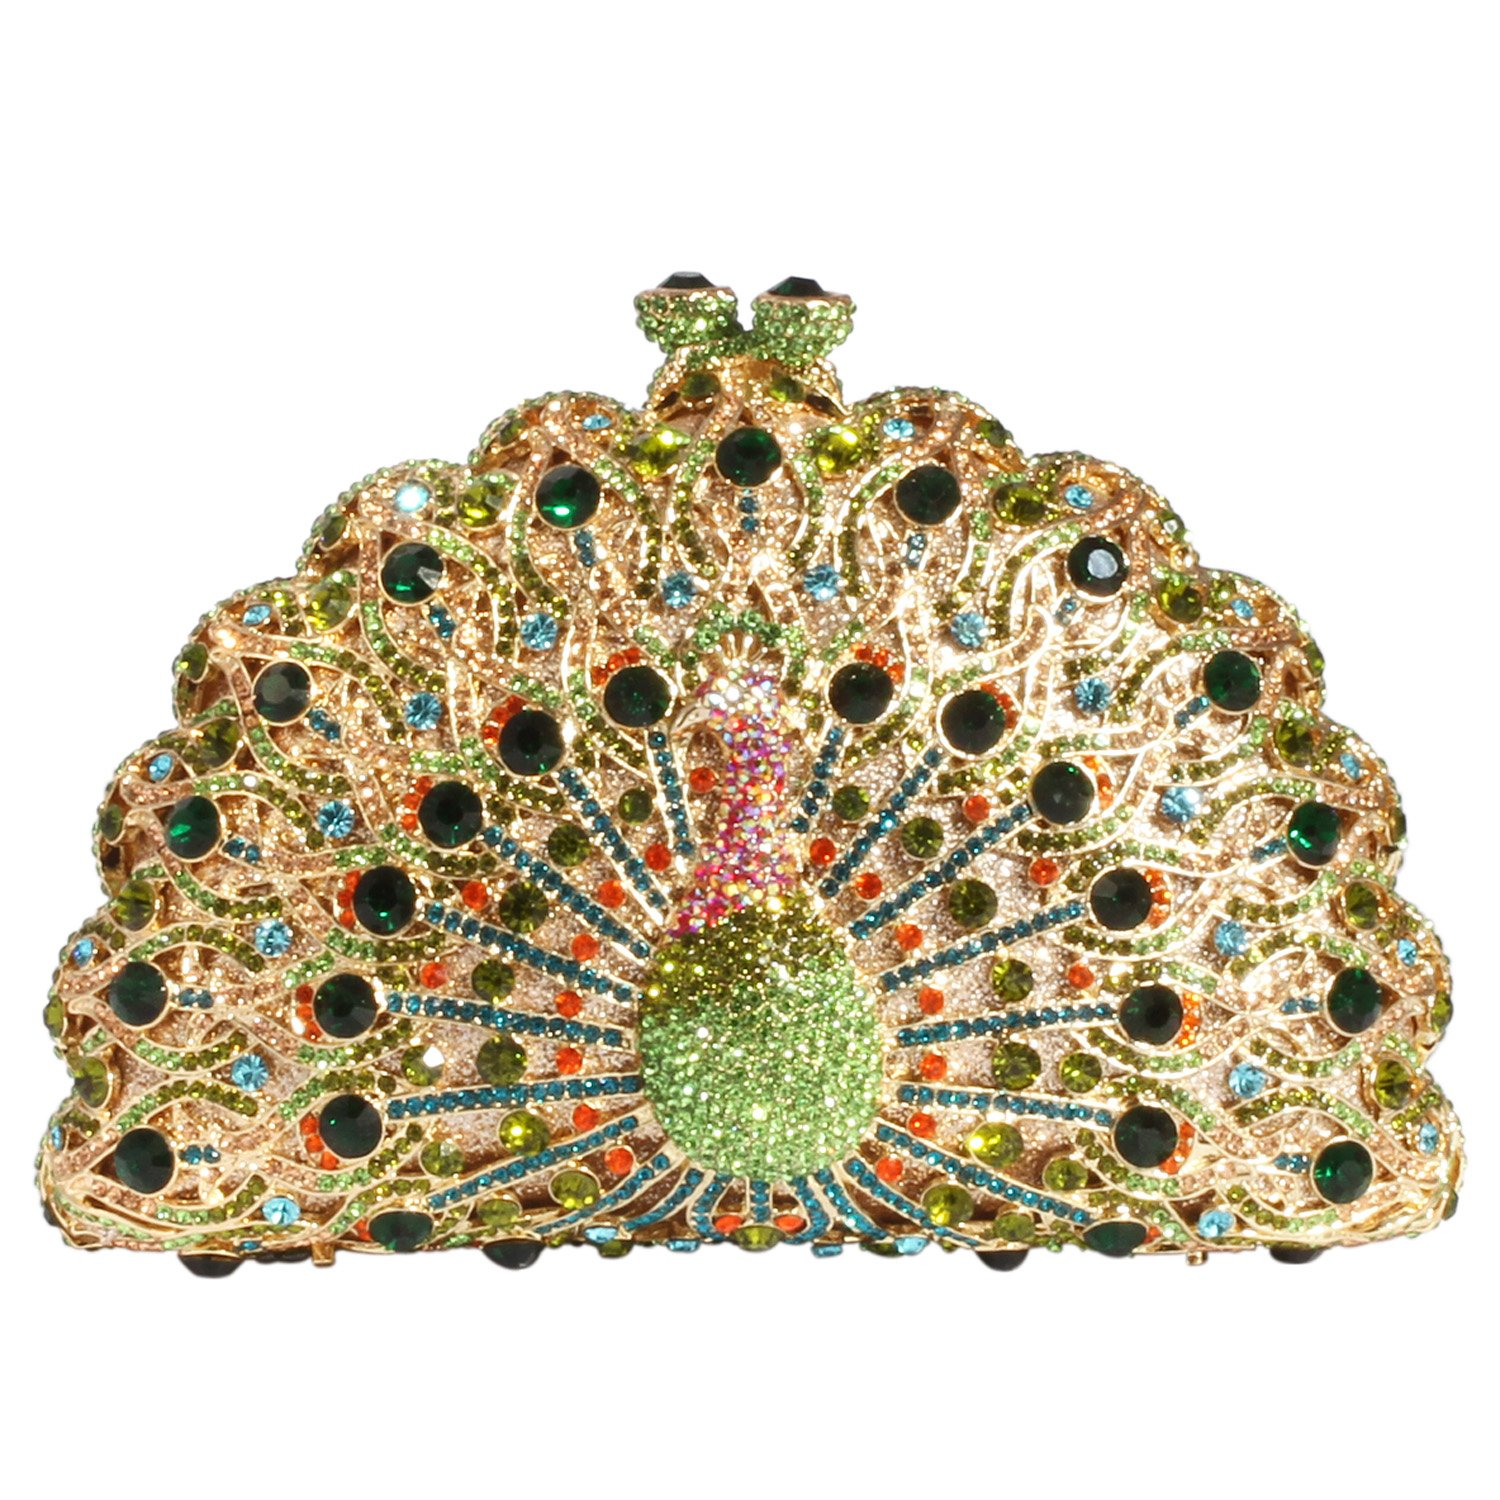 Digabi Peacock Women Crystal Evening Clutch Bags (One Size : 6.54.43 IN, style B crystal - gold plated) by Digabi